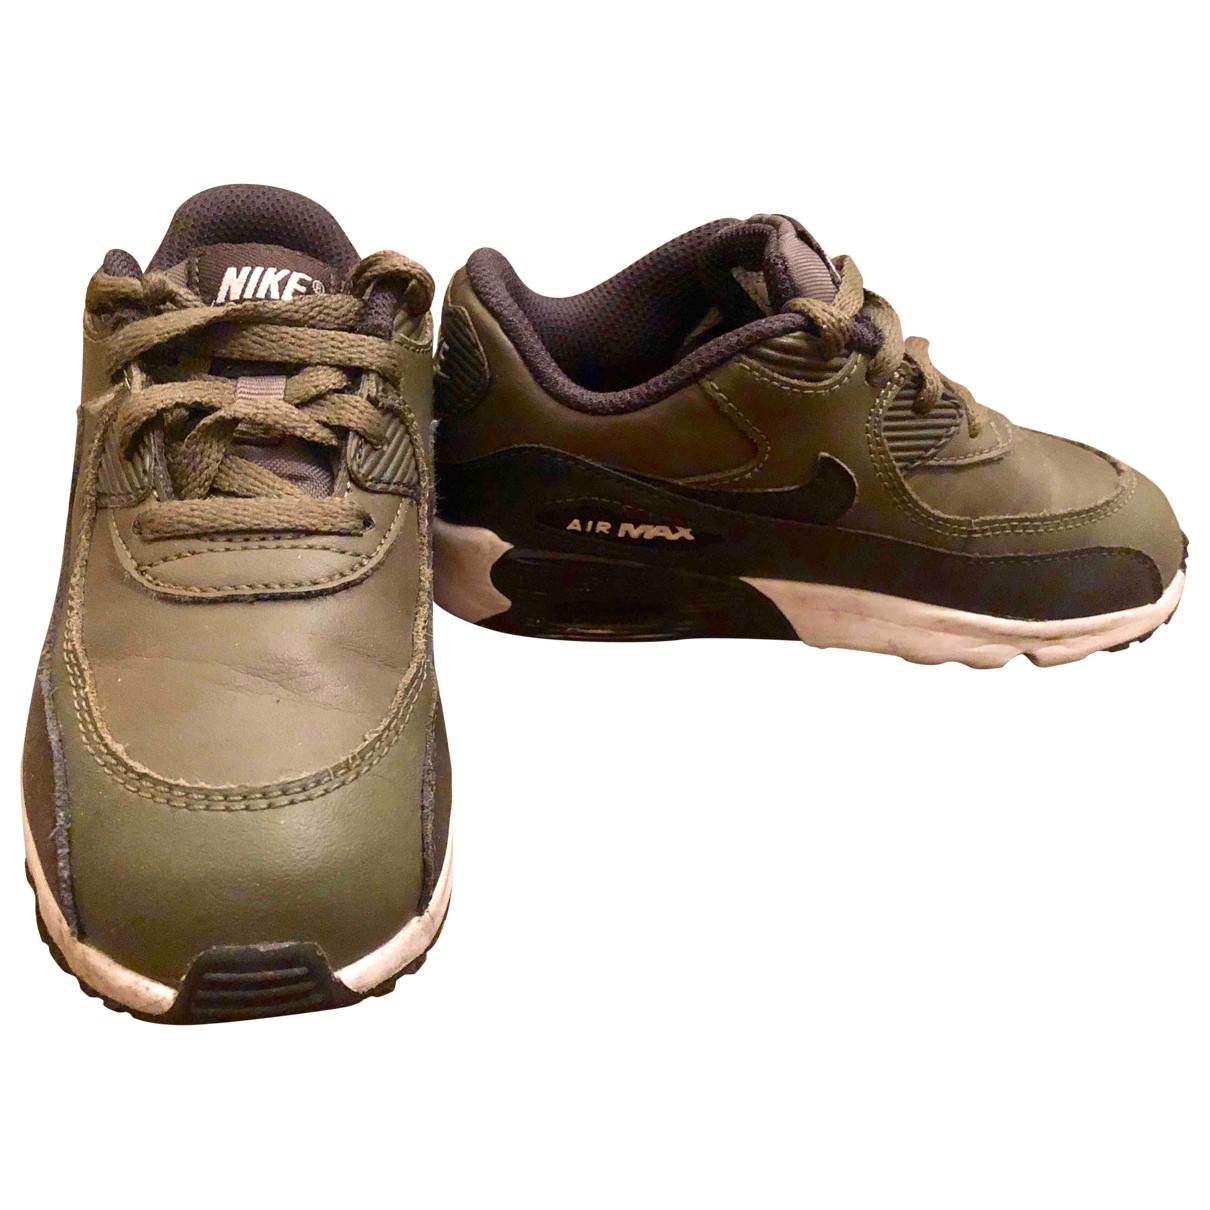 Nike Air Max 90 Green Leather Trainers for Kids 27 EU